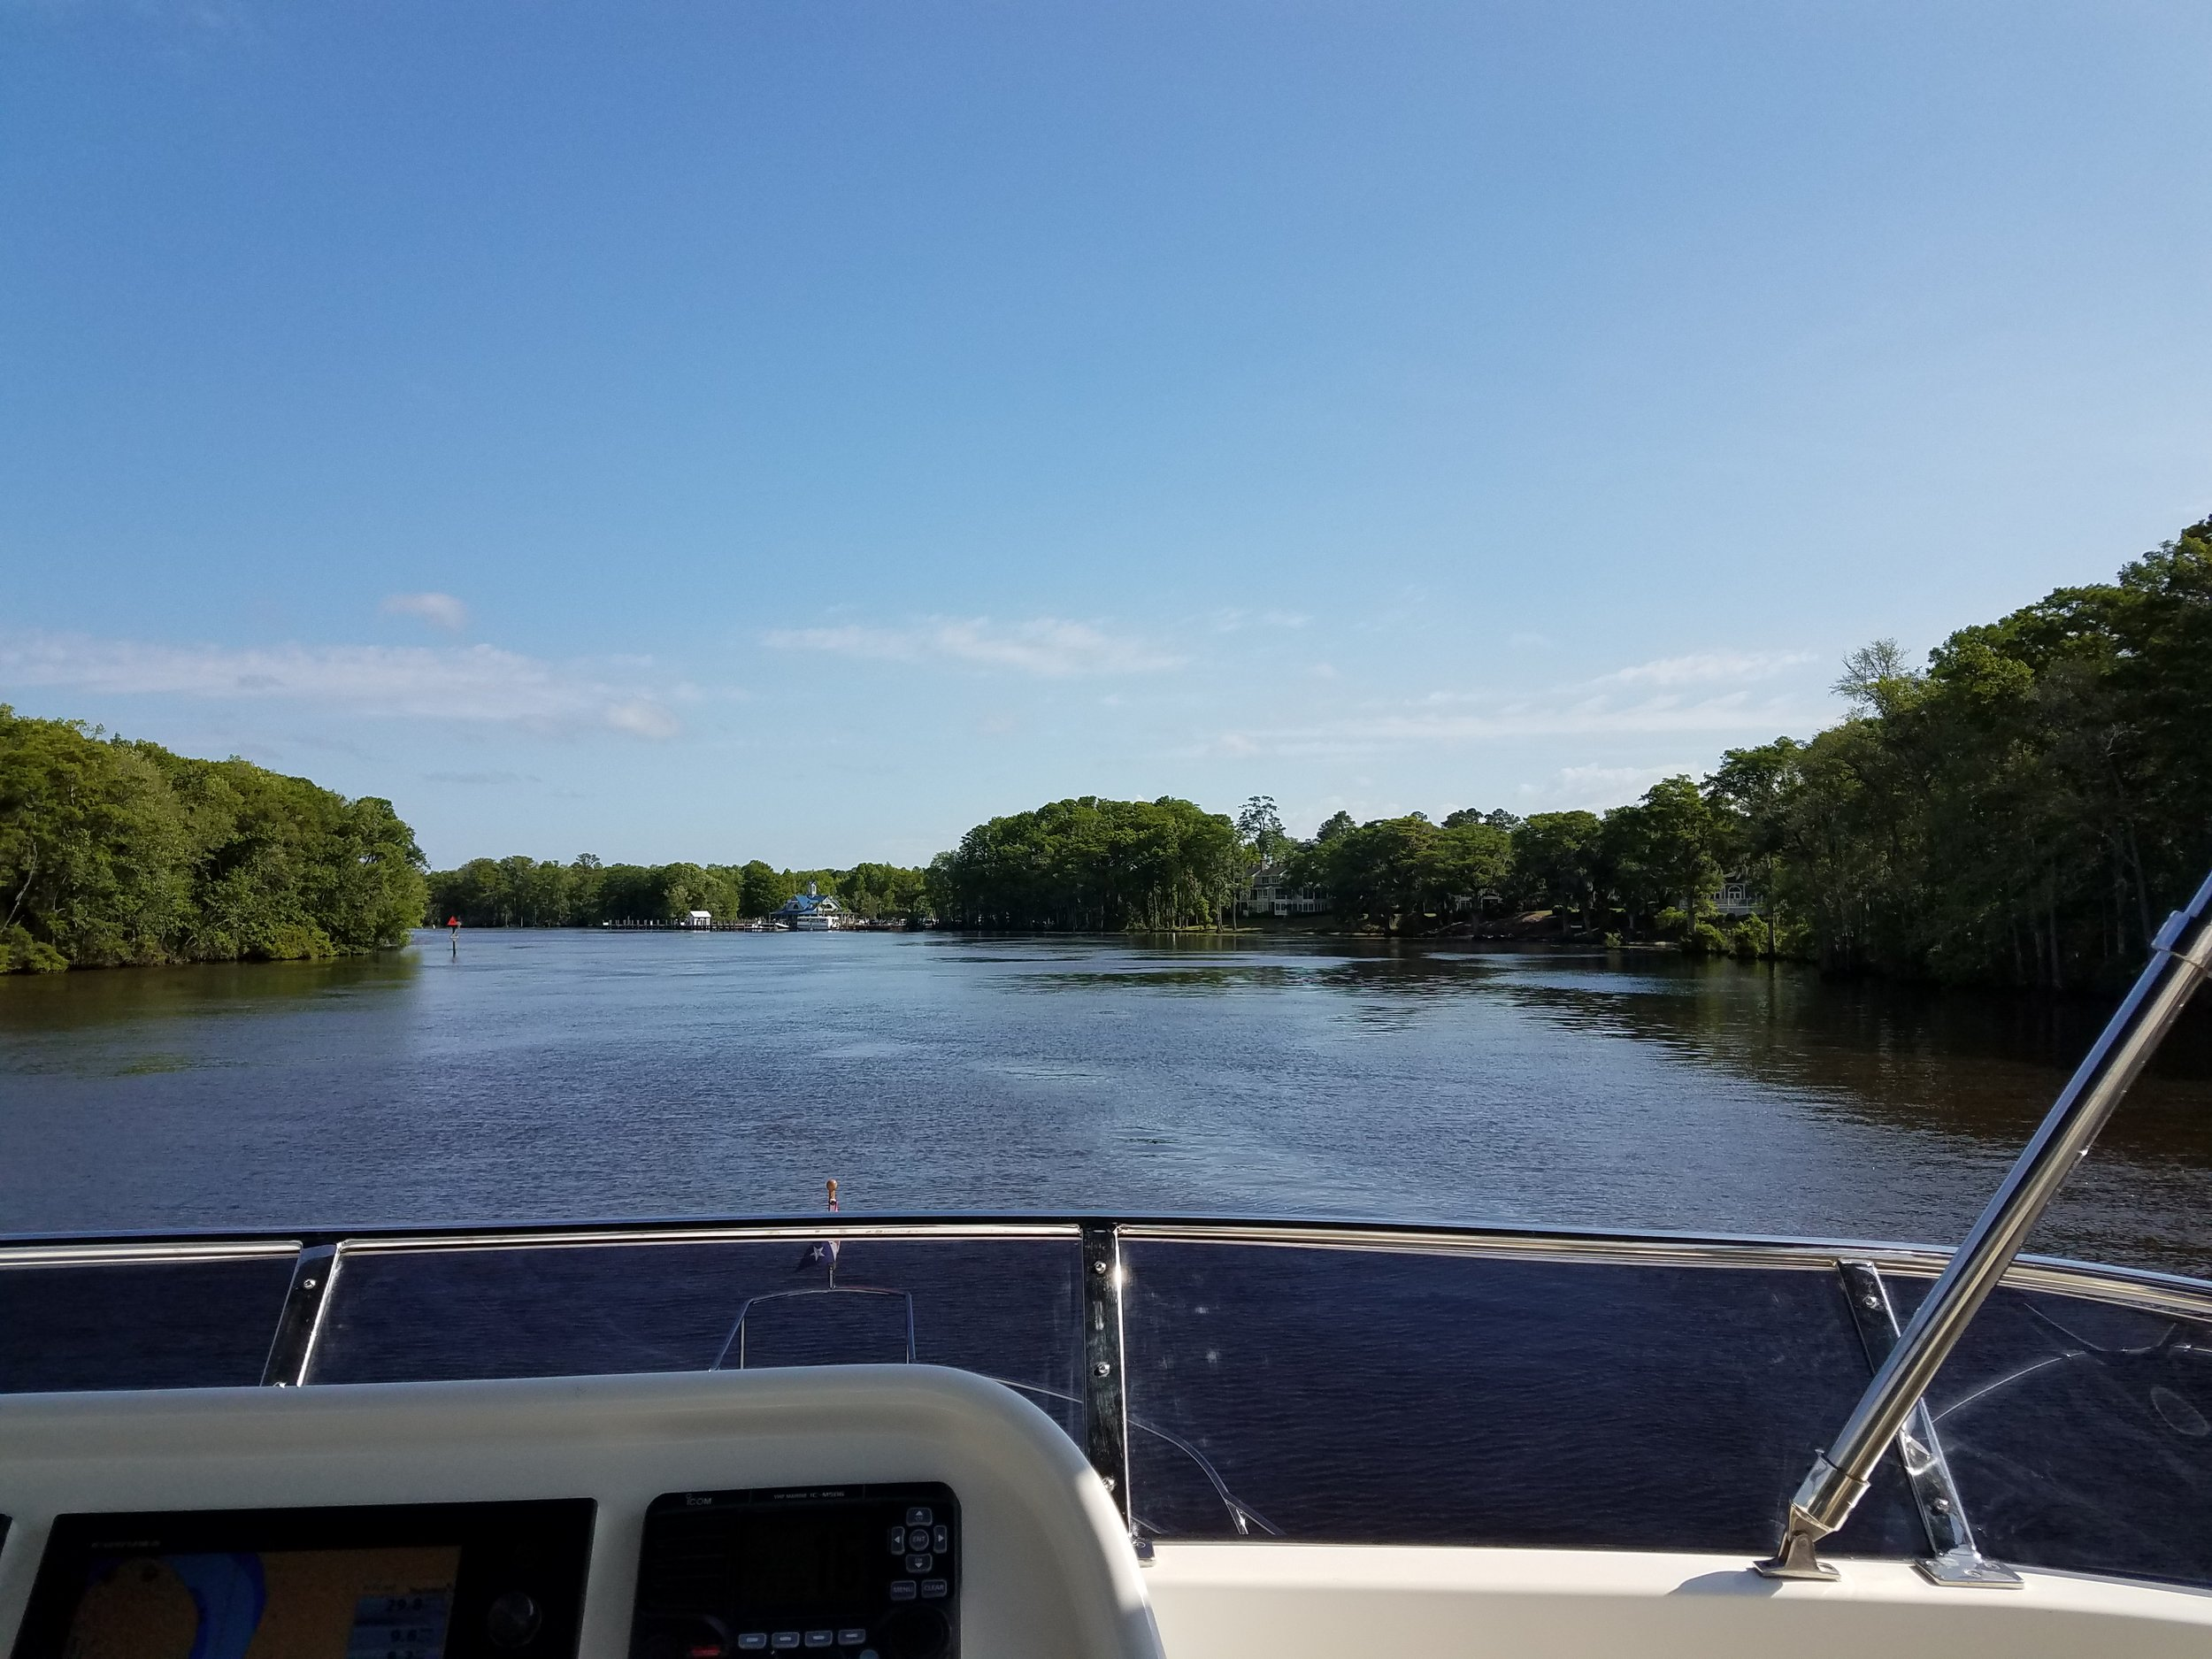 A beautiful day on the ICW, on our way to Myrtle Beach, SC